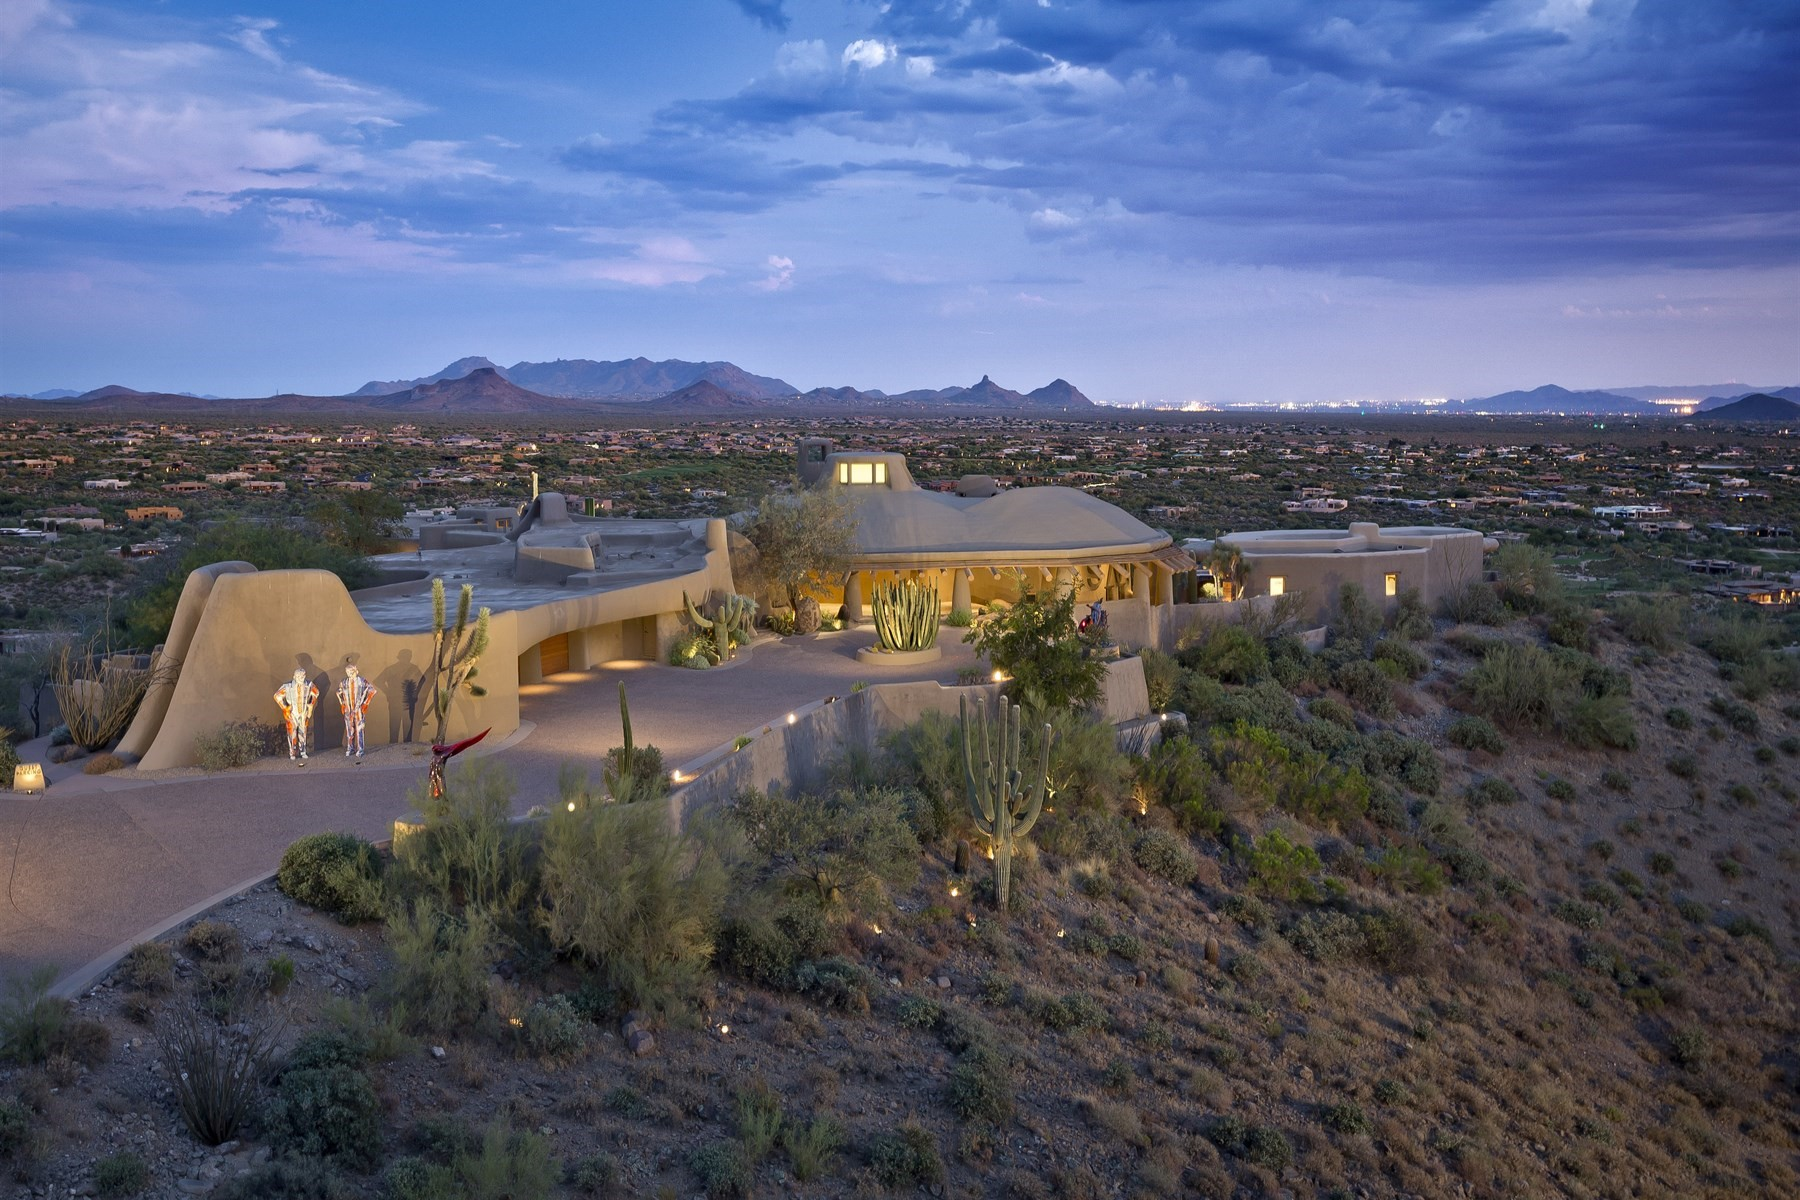 Частный односемейный дом для того Продажа на One-of-a-kind 15-acre estate that towers over the valley 39029 N Alister McKenzie Dr Scottsdale, Аризона, 85262 Соединенные Штаты